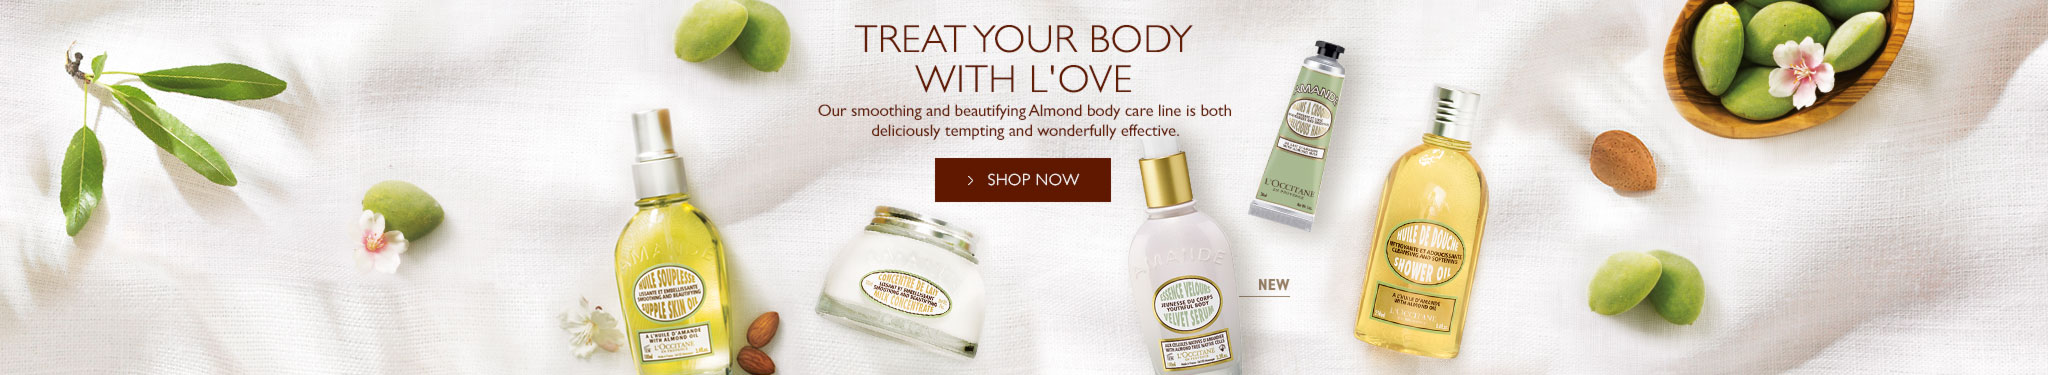 Treat your Body with Love